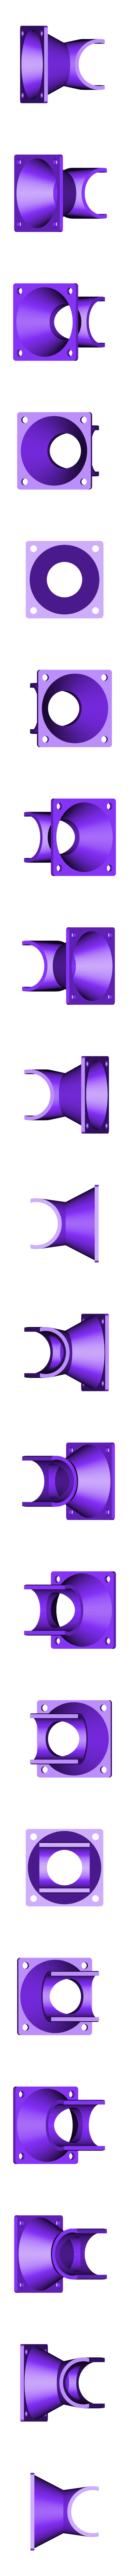 Hotend-Fan-Duct.stl Download free STL file Customizable Fan Duct for All Metal Hot End and 40mm fan • 3D printing model, dede67